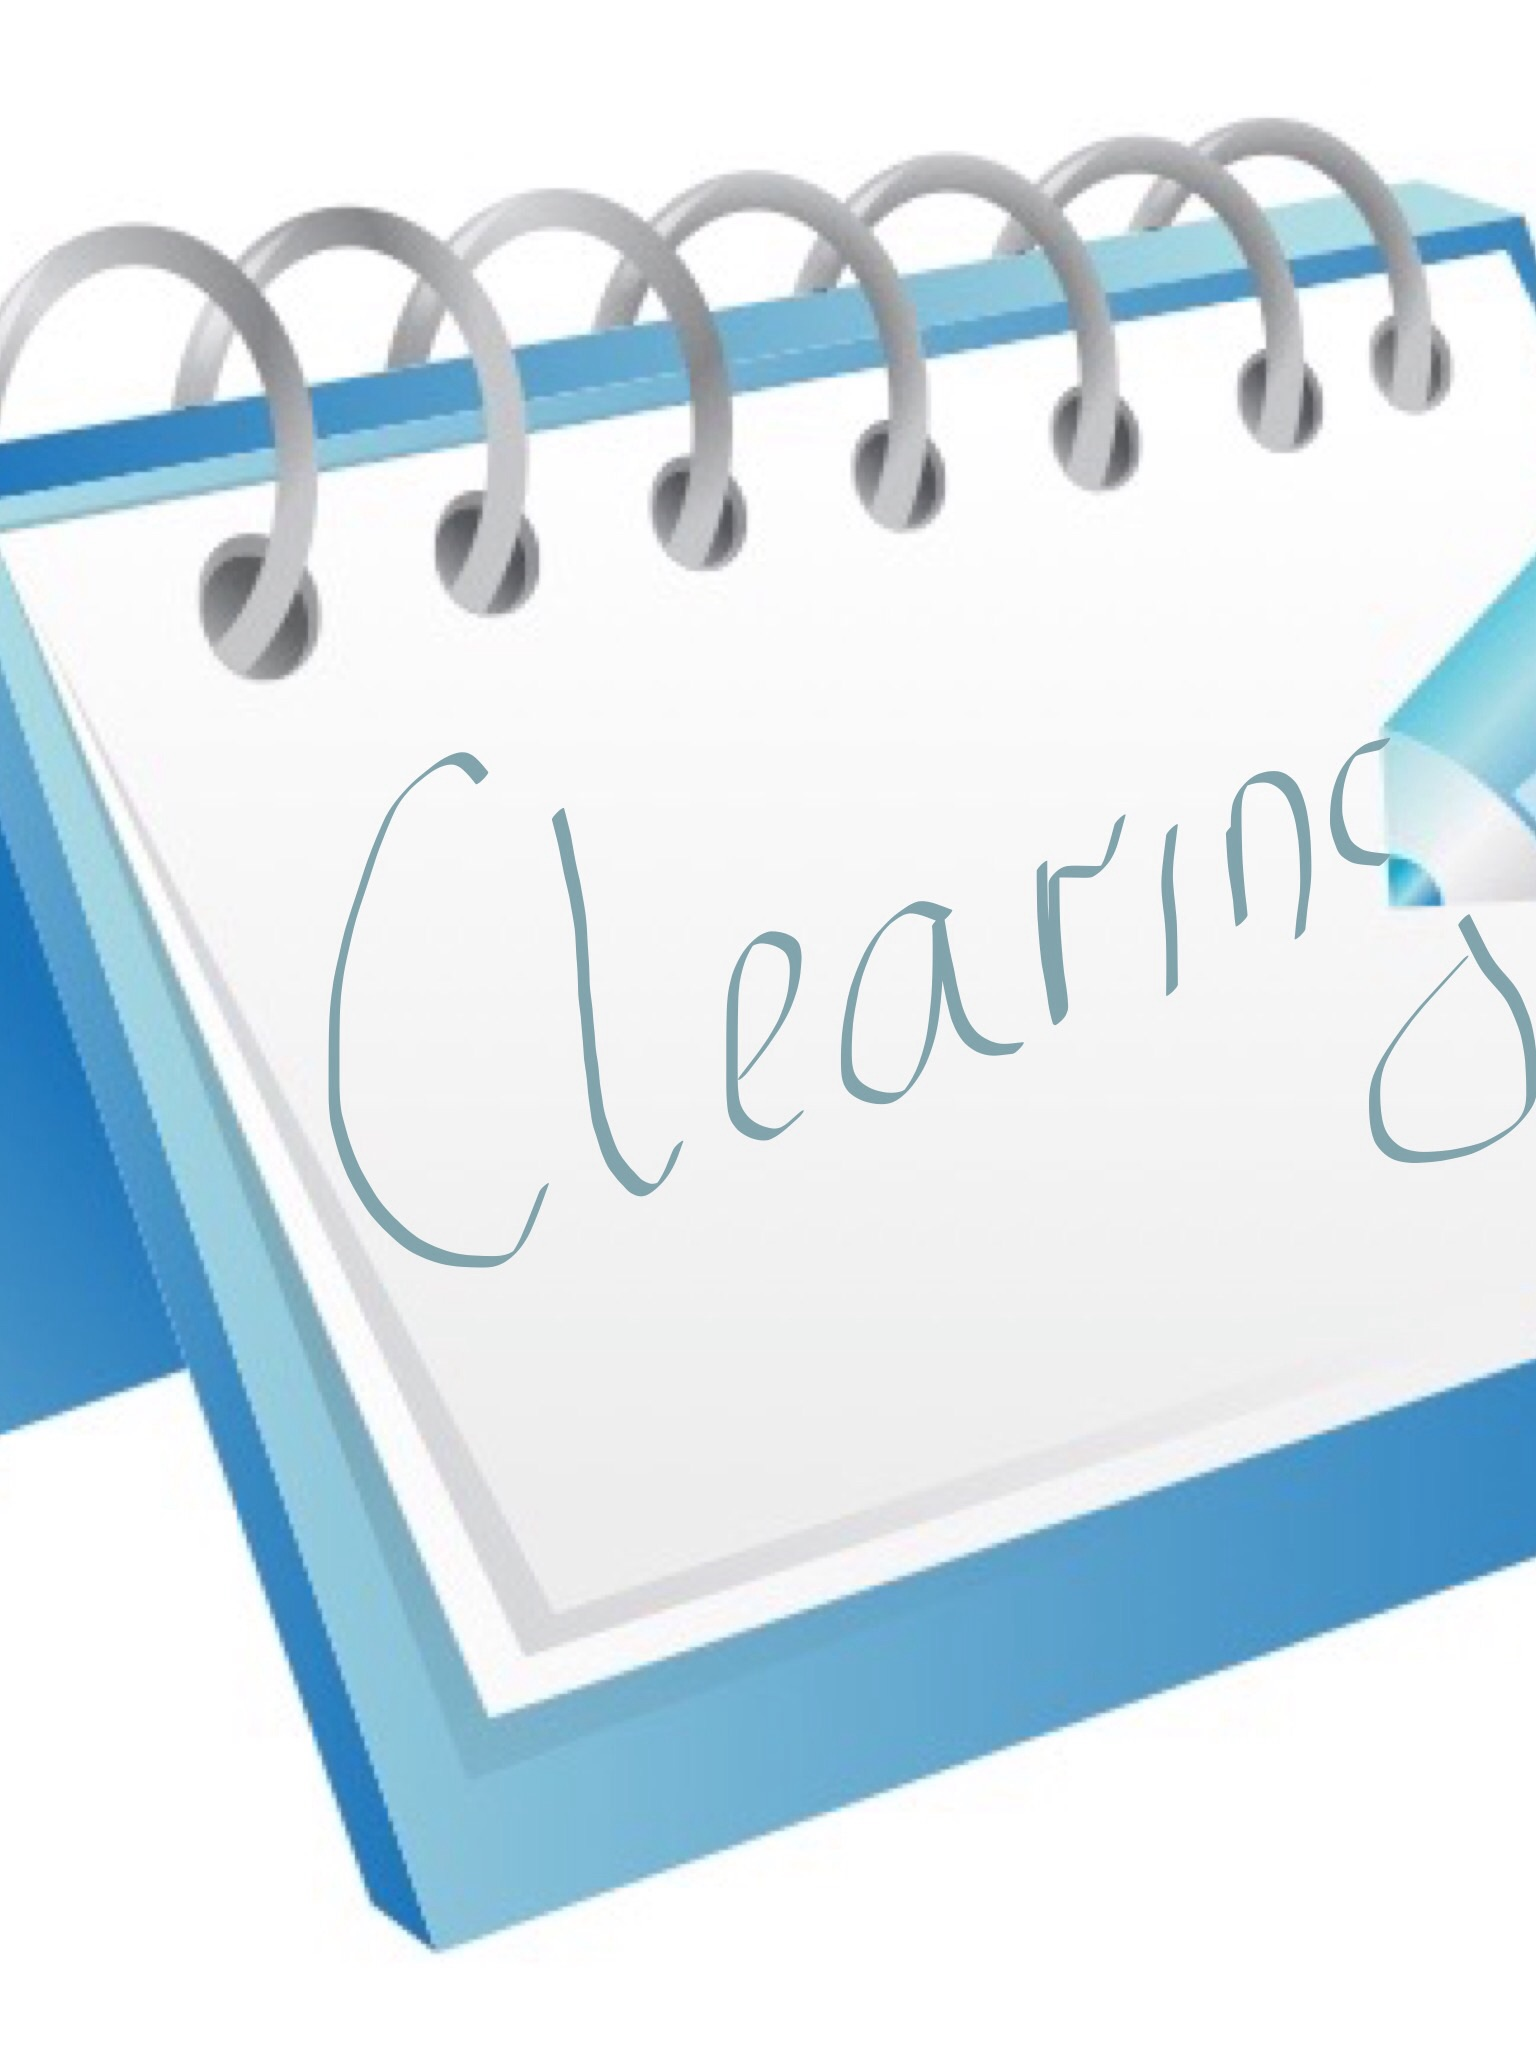 Clearing-obligation-emir